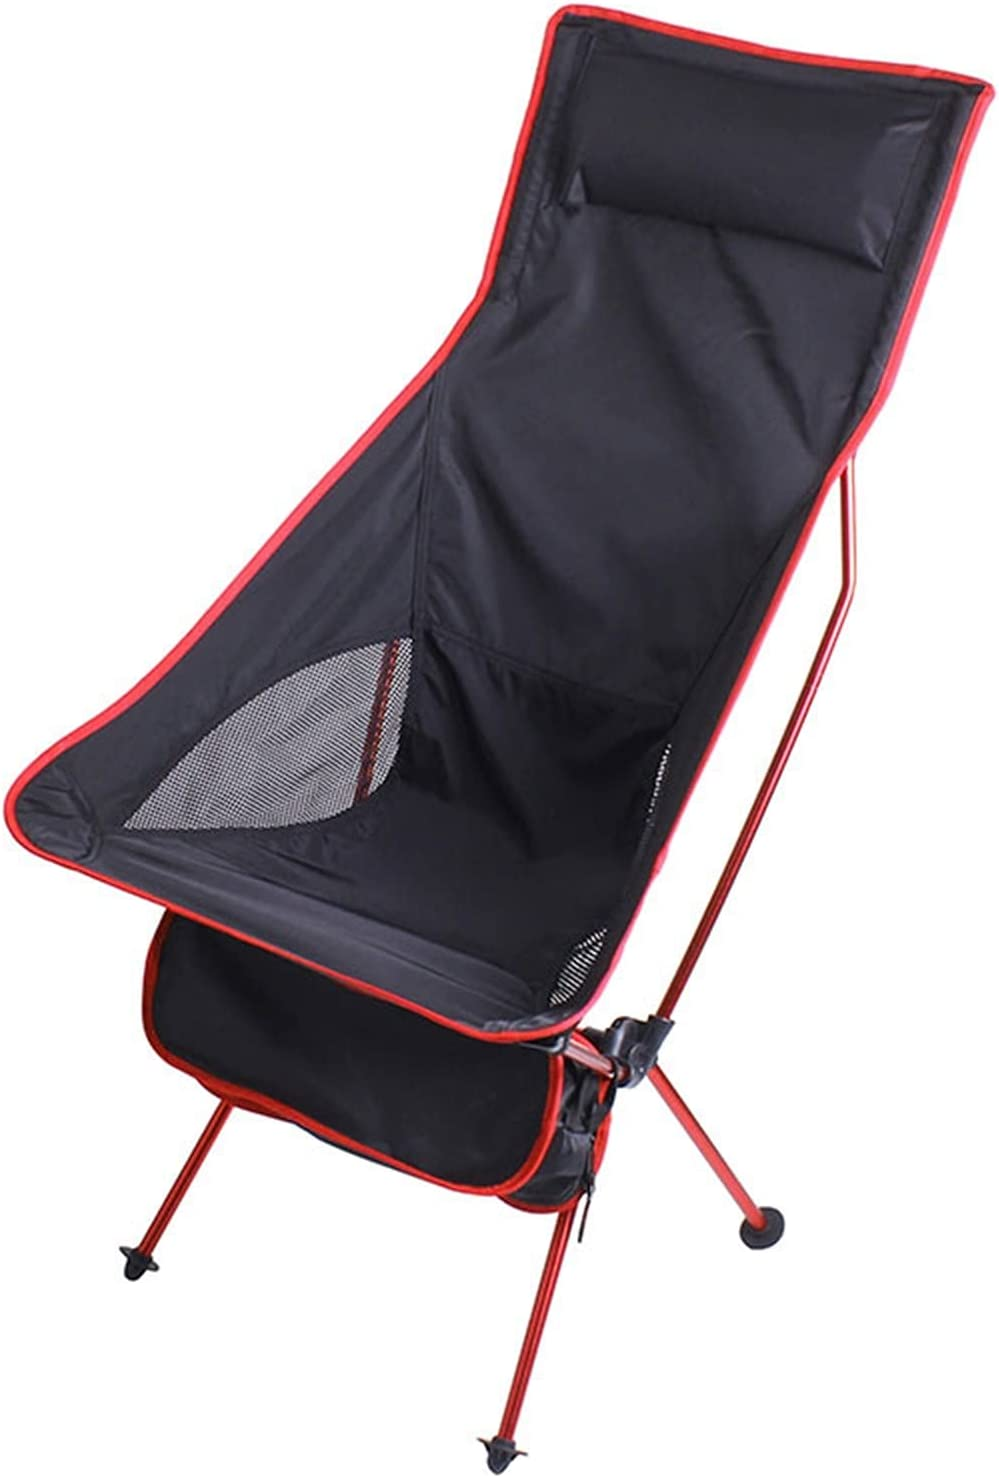 ACYC Outdoor online shopping Camping Chair Oxford Cash special price Folding Extende Cloth Portable